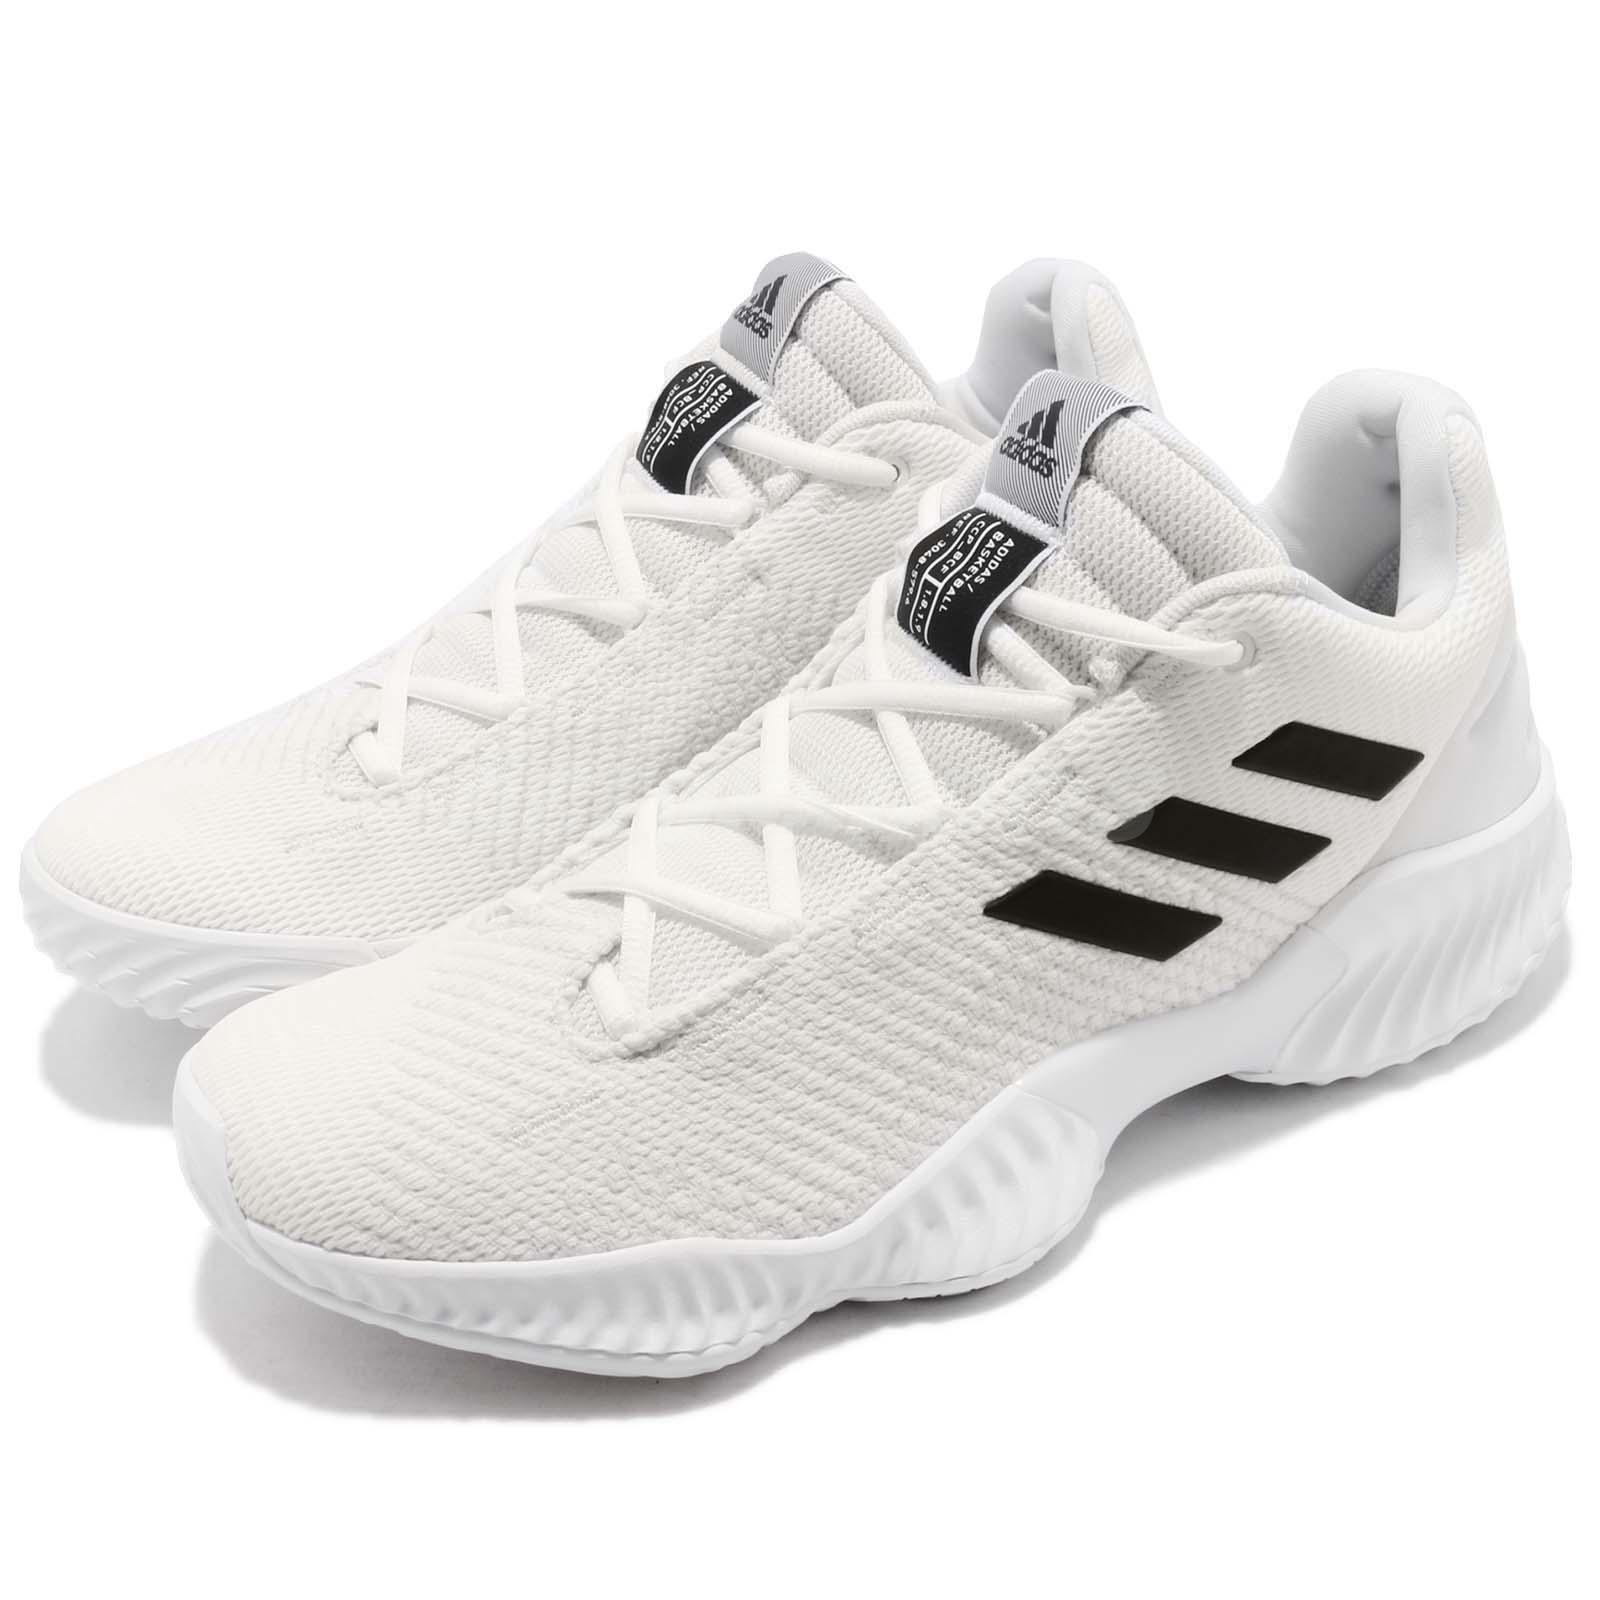 4e356c56474 Details about adidas Pro Bounce 2018 Low White Black Men Basketball Shoes  Sneakers BB7410